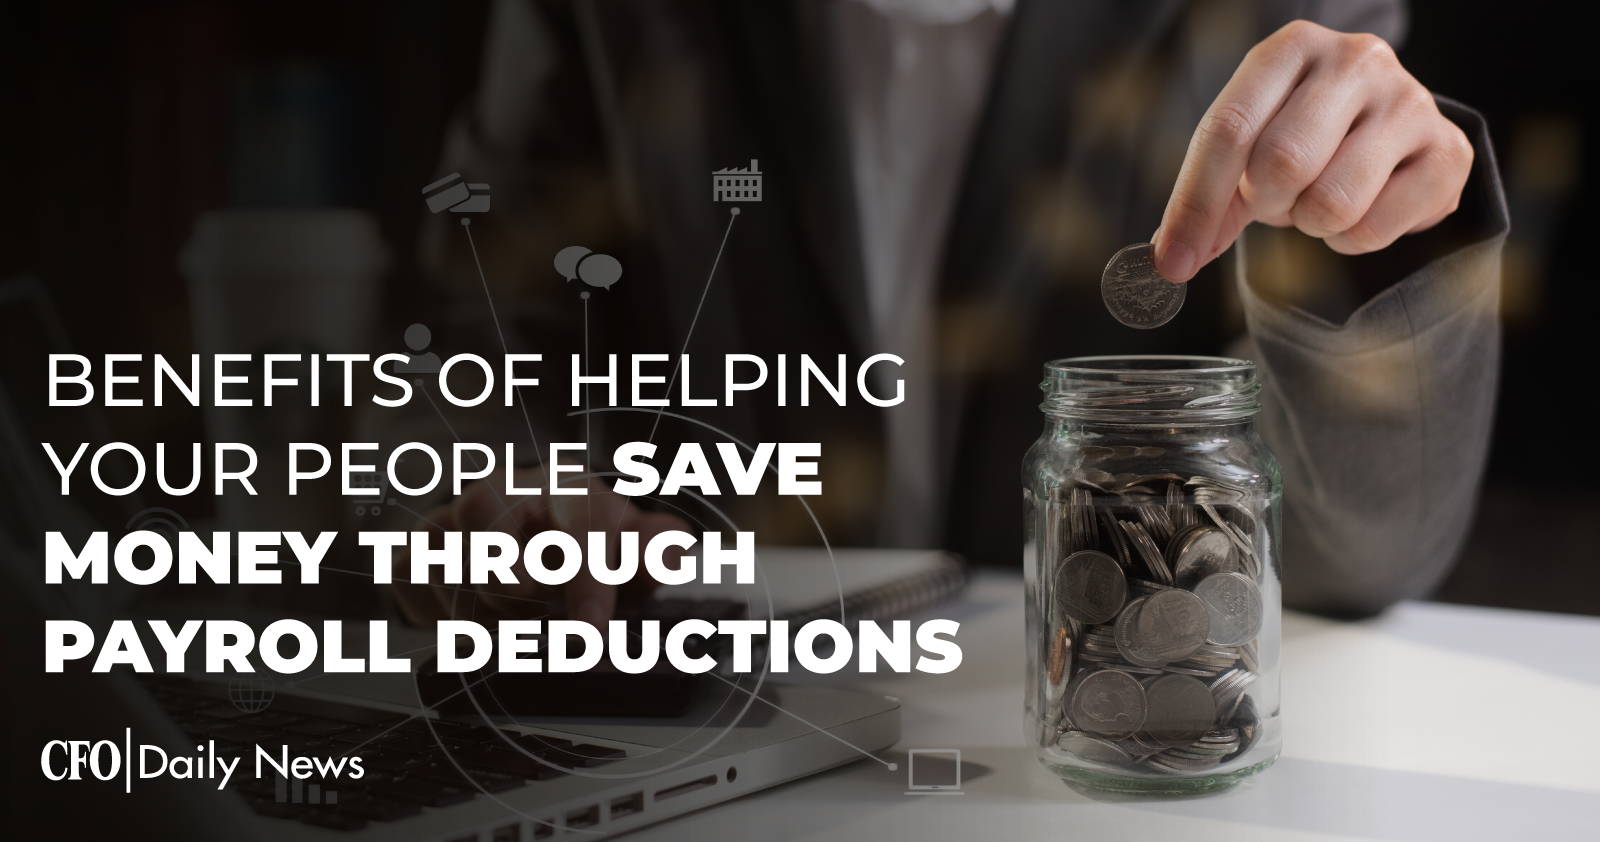 benefits of helping your people save money through payroll deductions